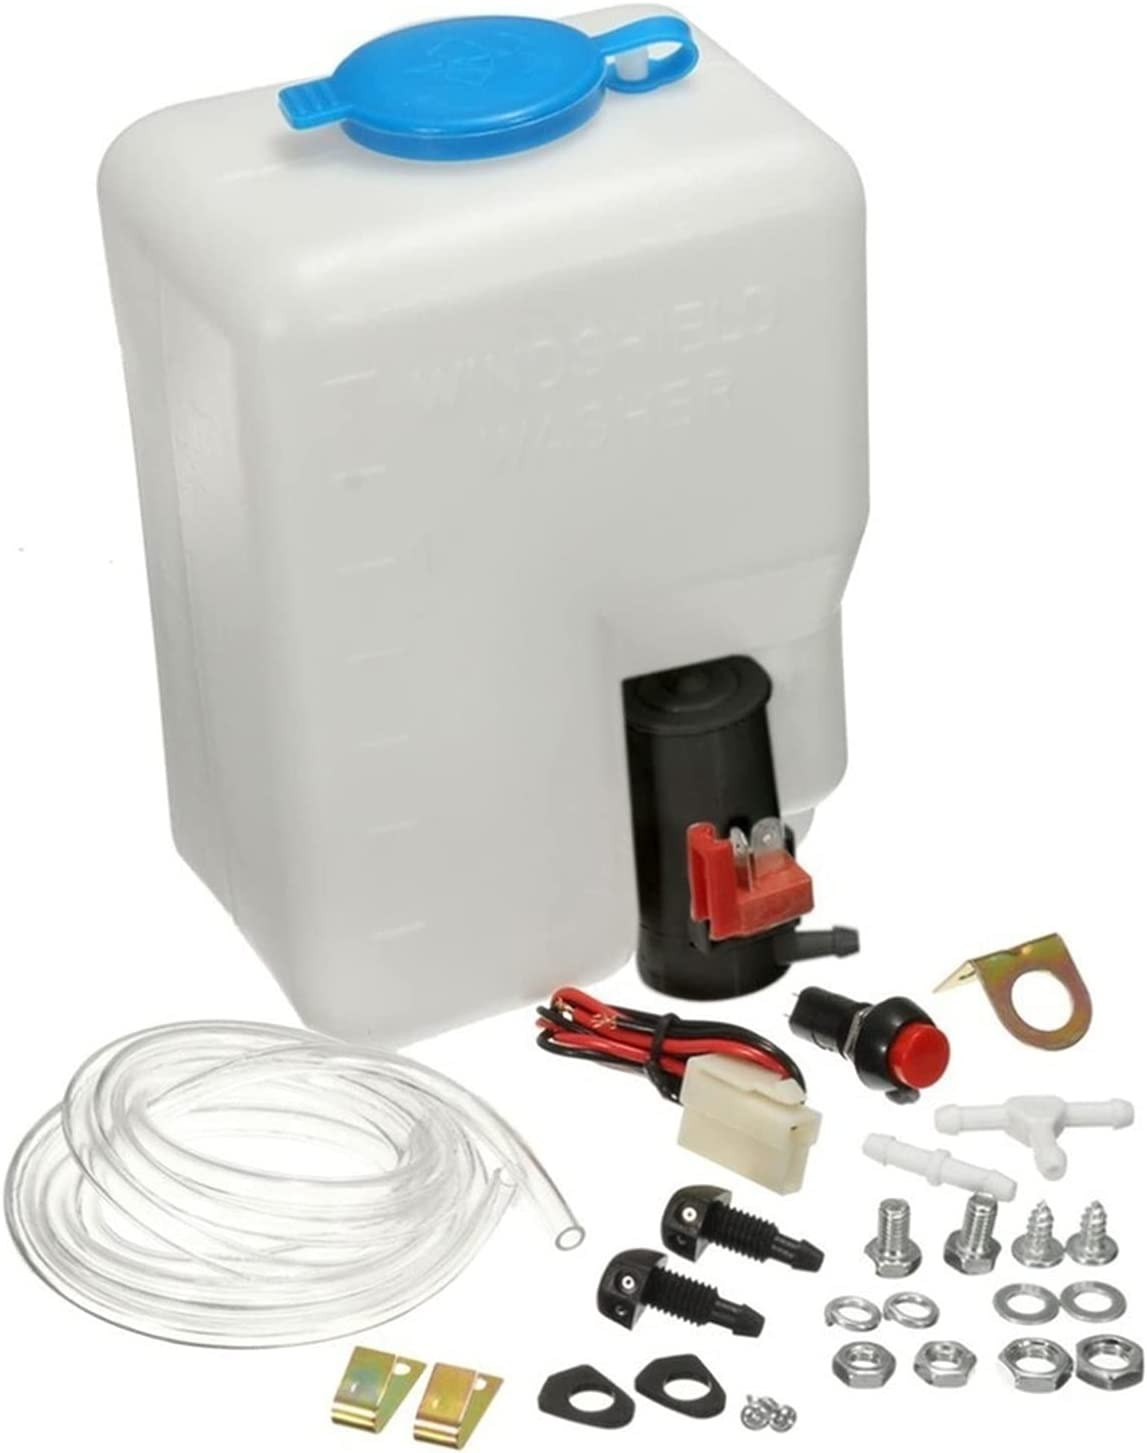 XUEMEI Professional Water San Jose Mall Pump Car Reservoir Washer P Windshield Sales of SALE items from new works